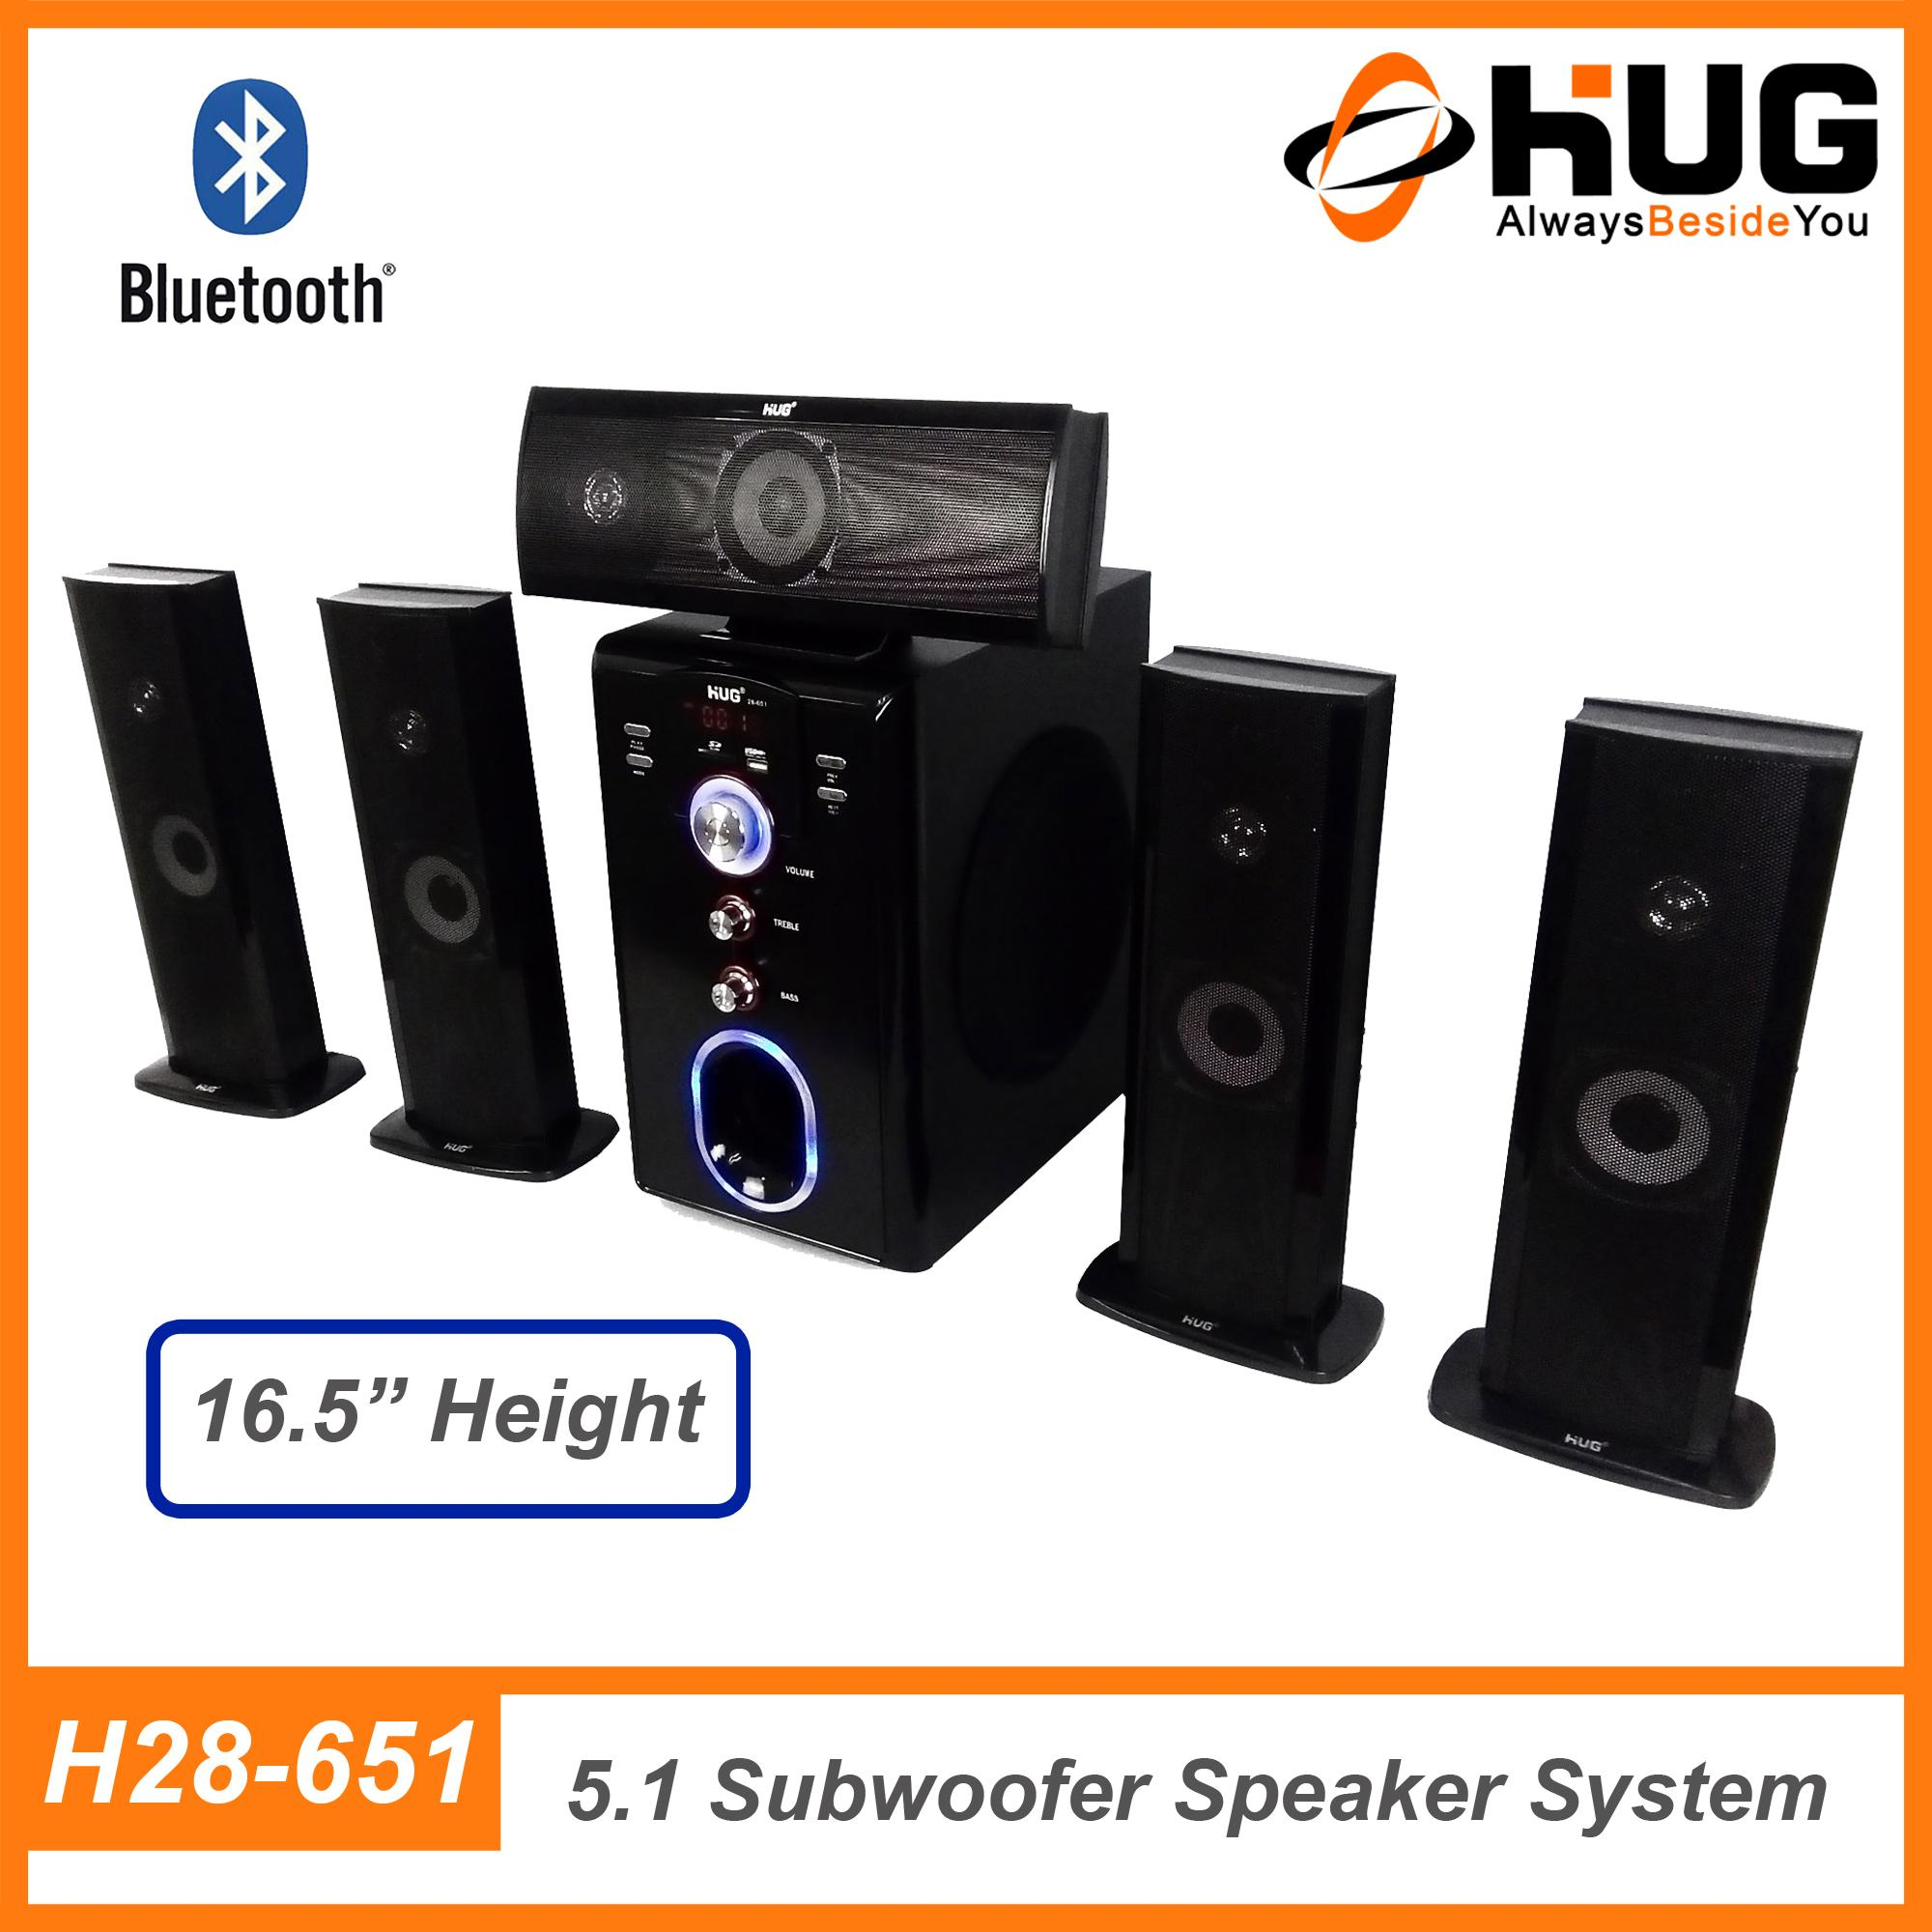 Hug H28-651 Bluetooth Home Theater Subwoofer Speaker By Hug Official Store.